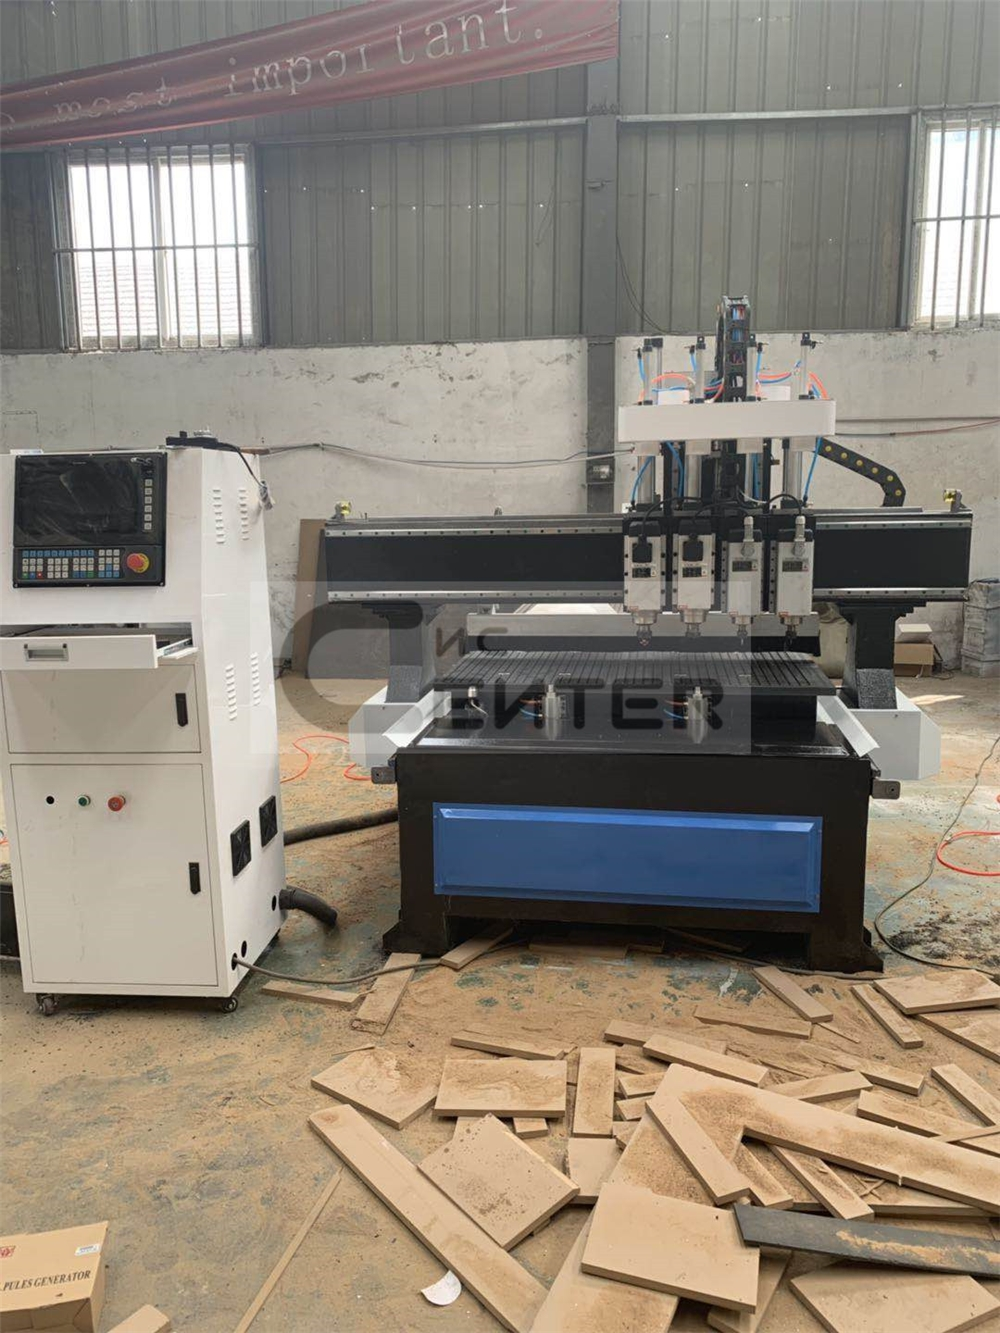 Cncenter Hot Selling Used Cnc Router Machines For Sale In India With Ce Certificate Buy Used Cnc Router Machines For Sale In India Cnc Router 4 Axis